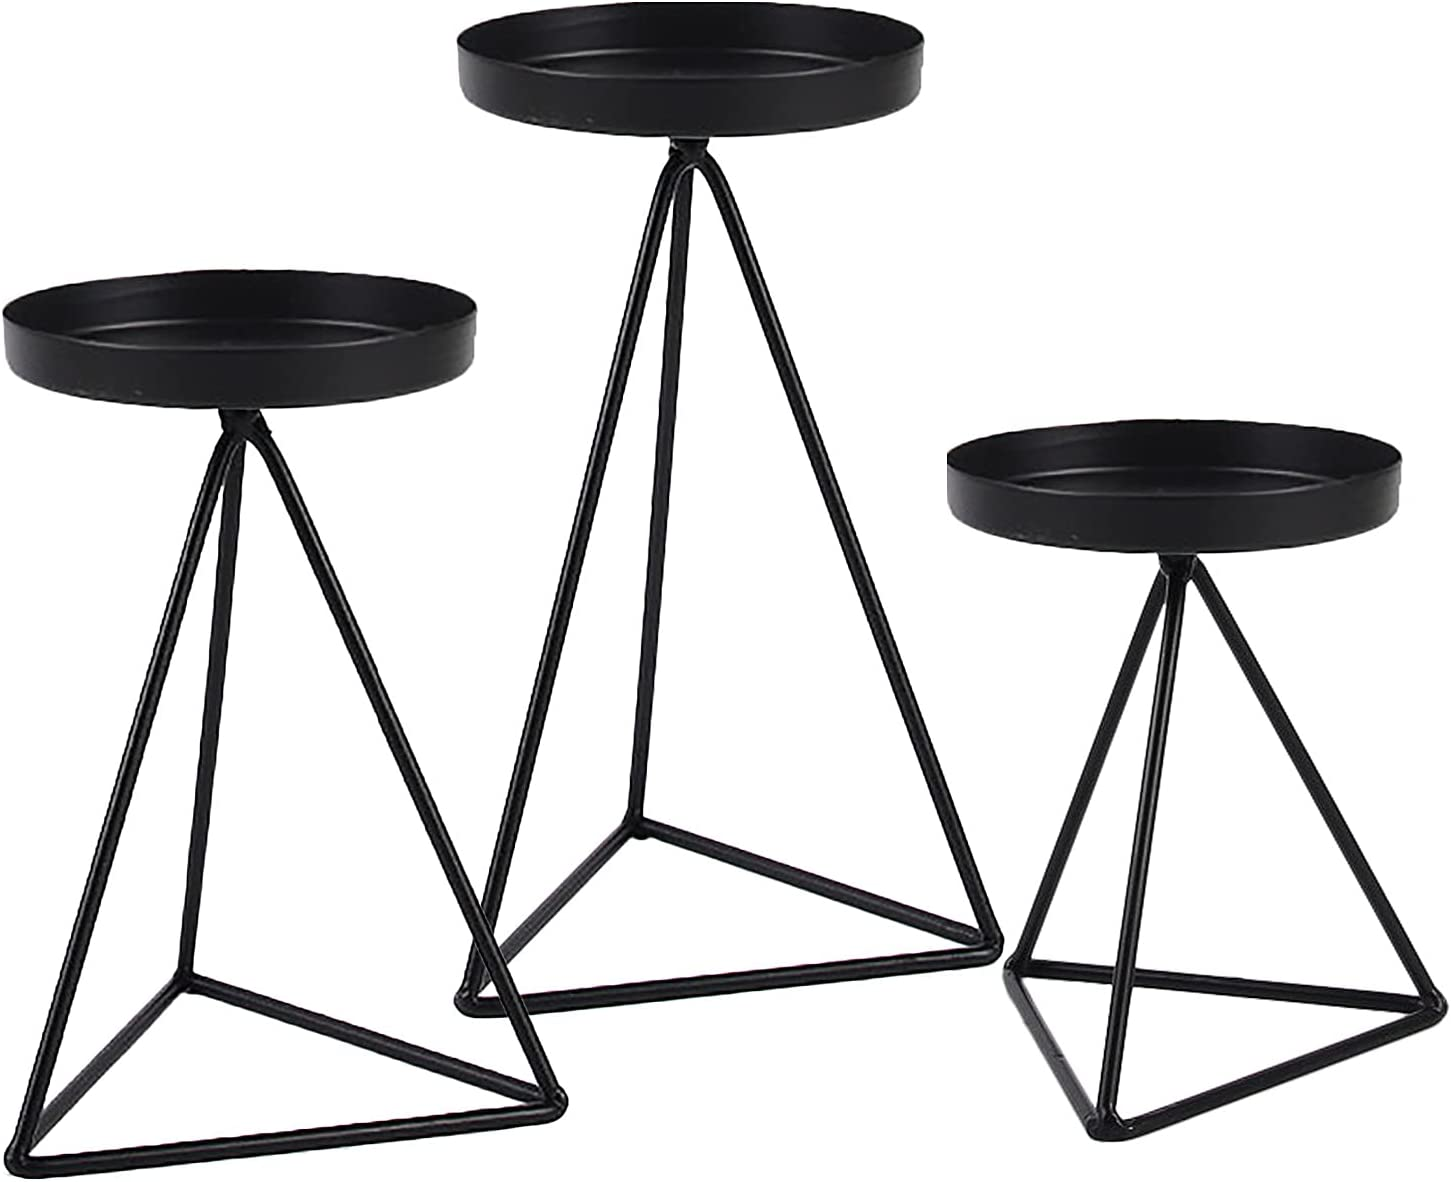 HYKITDAY Set of 3 Geometric Cheap super special price Metal Iron Cand Taper Credence Holder Candle